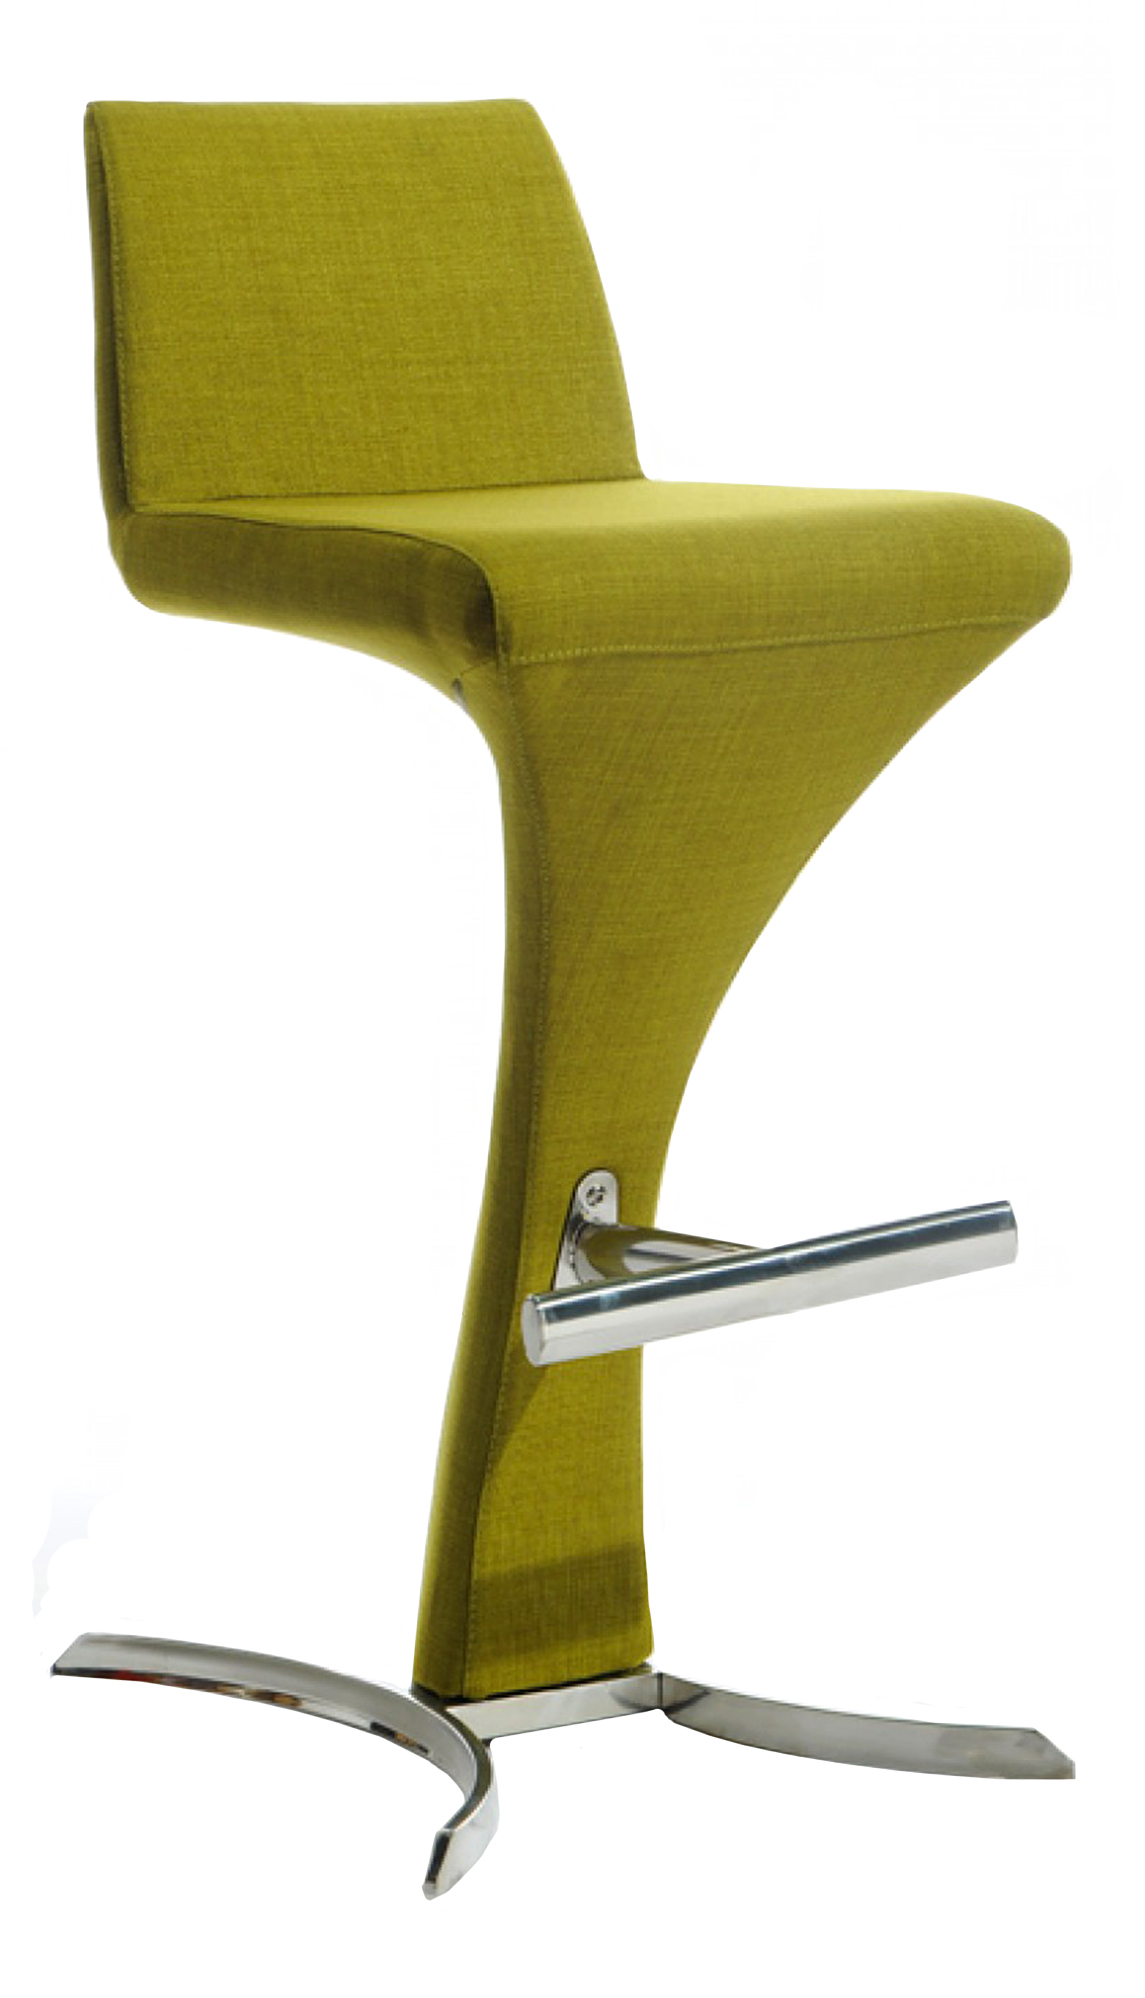 The Vito Olive Green Bar Stool is available for sale at AdvancedInteriorDesigns.com